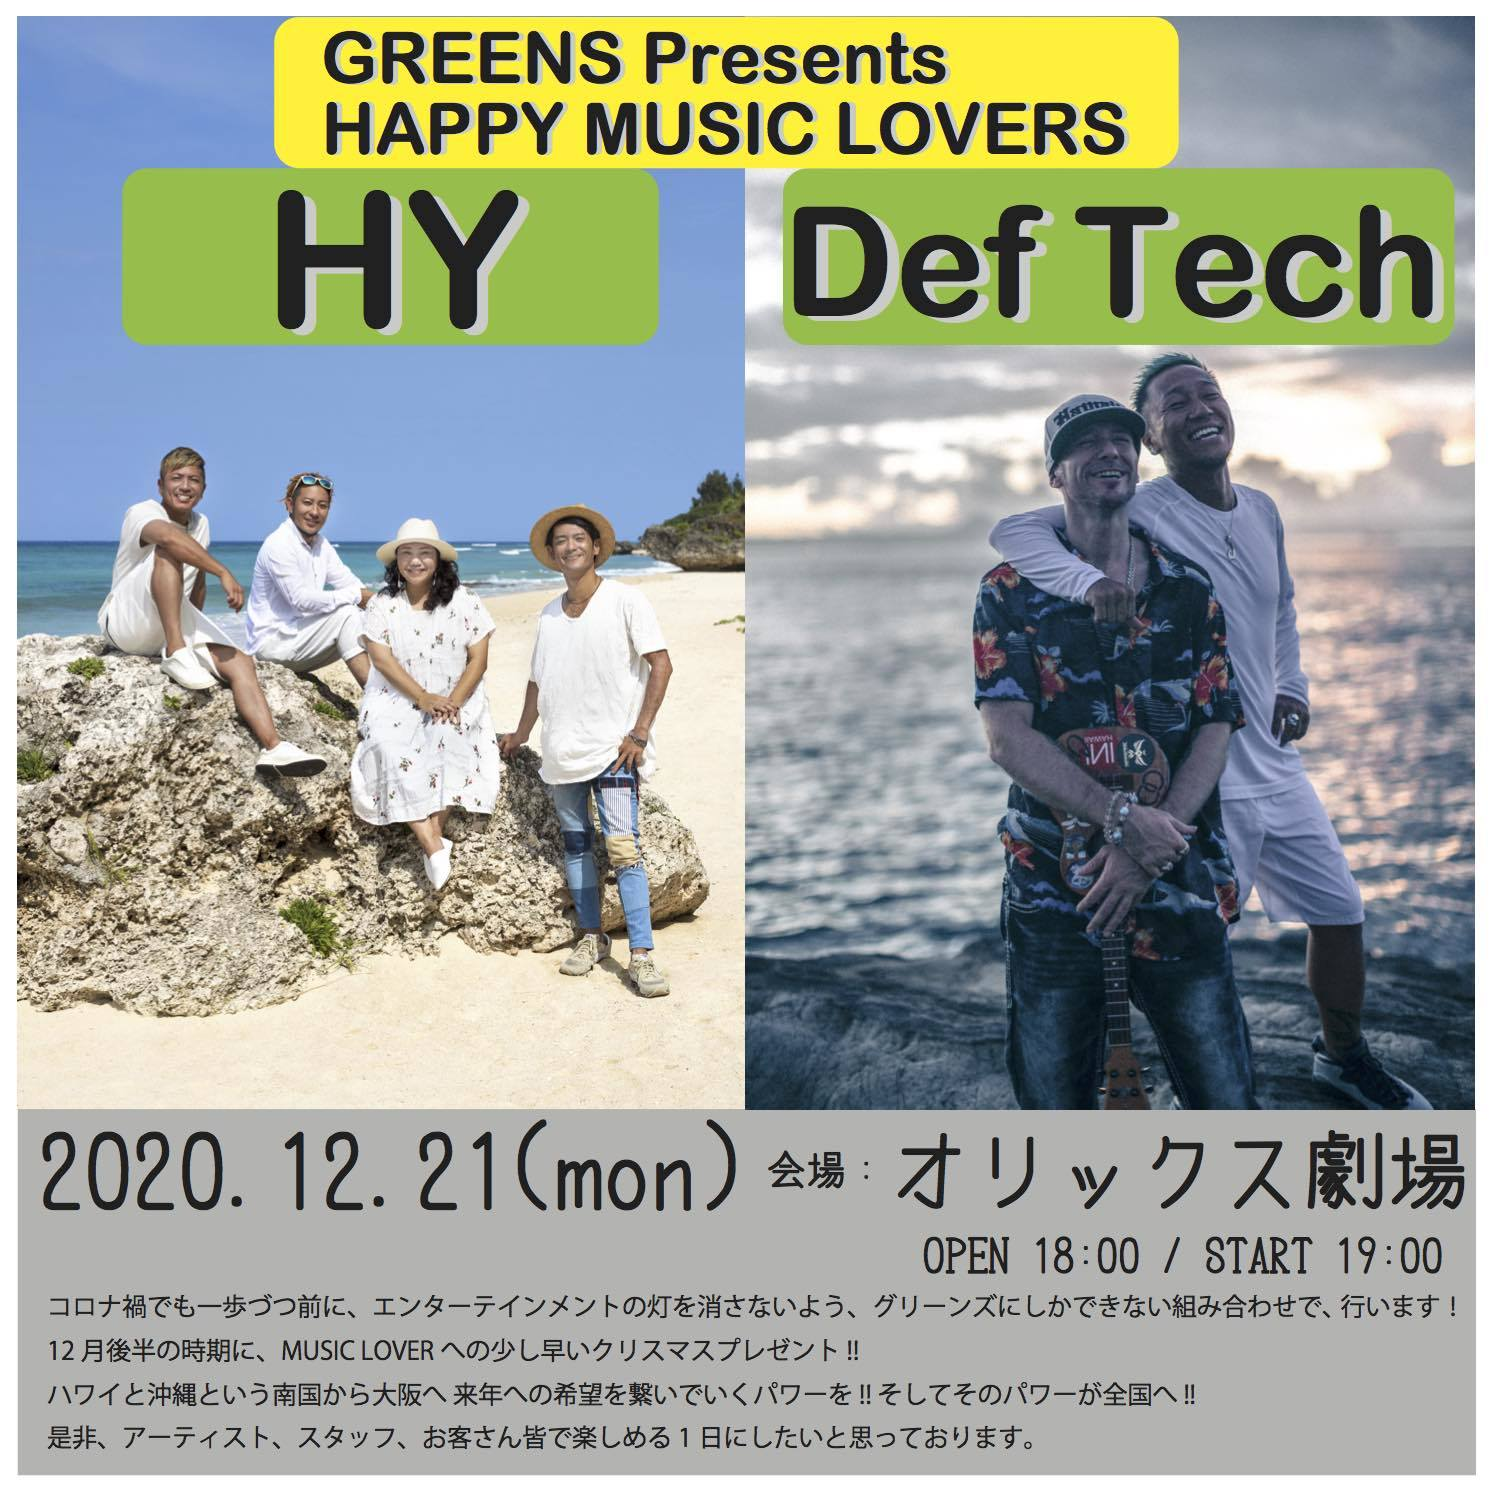 GREENS presents HAPPY MUSIC LOVERS